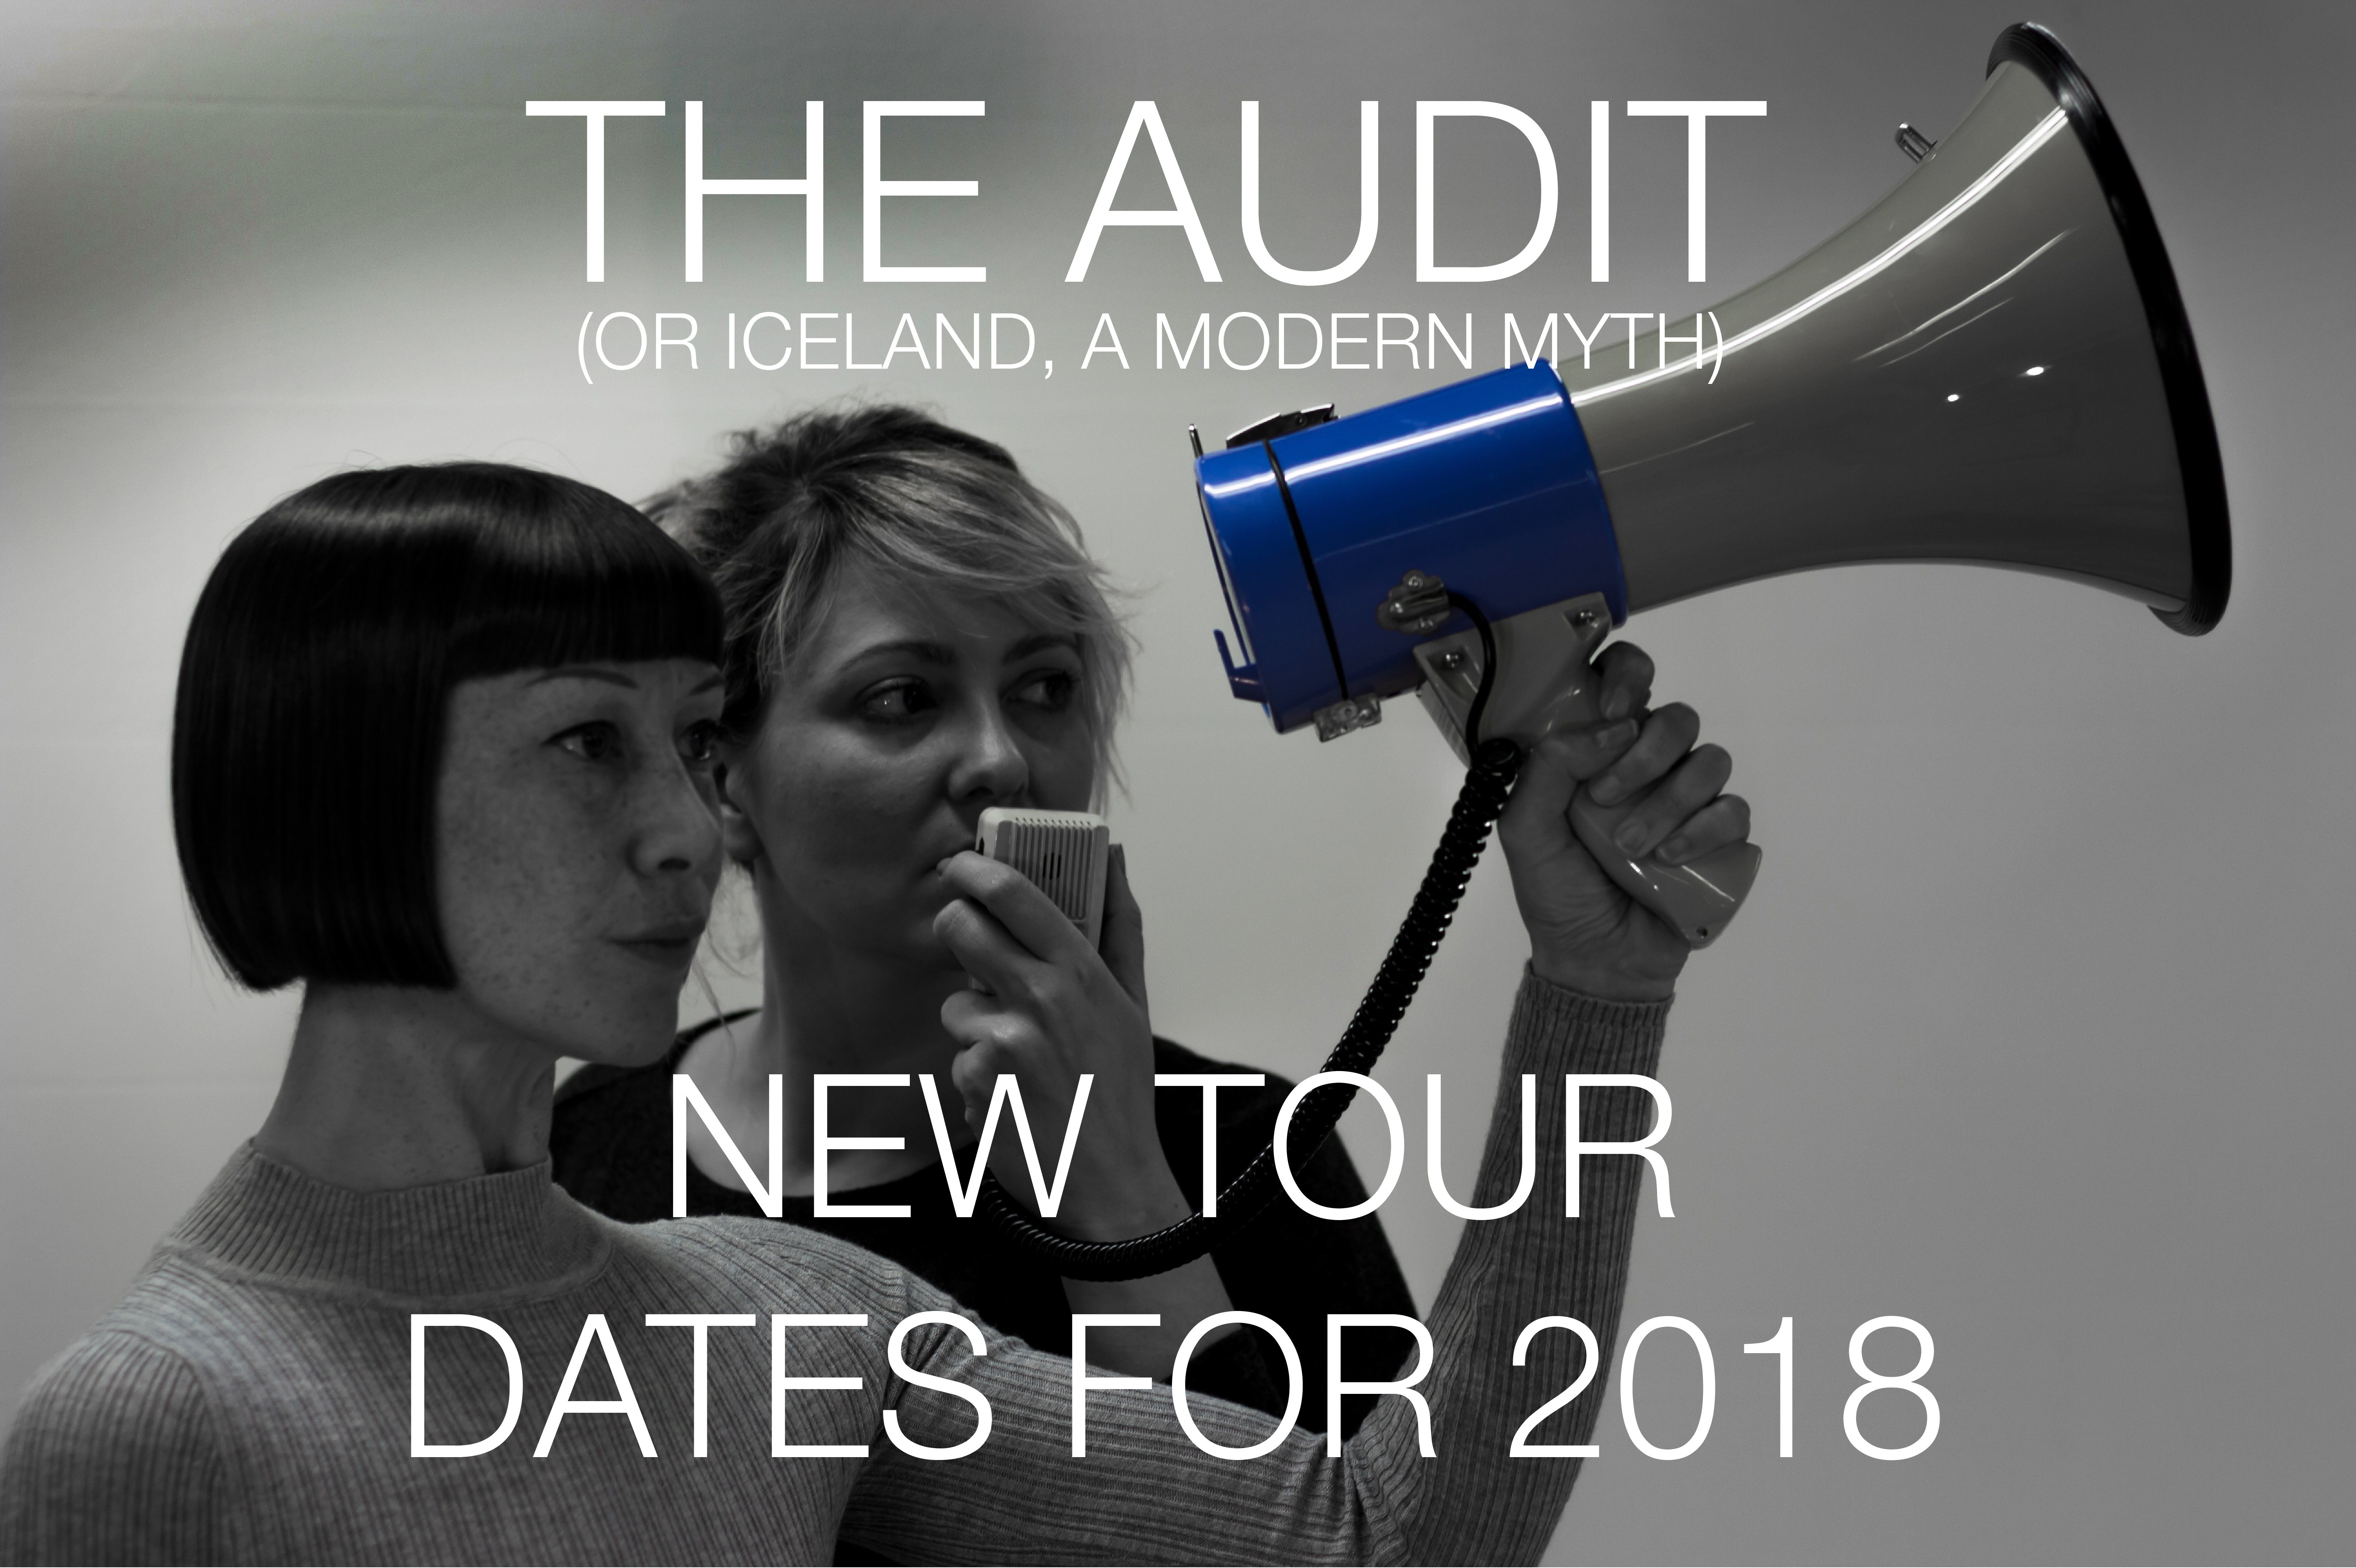 Main promo image for Proto-type Theater's 'The Audit (or Iceland, a modern myth)'. Two women stand side-by-side speaking into a blue loudhailer..